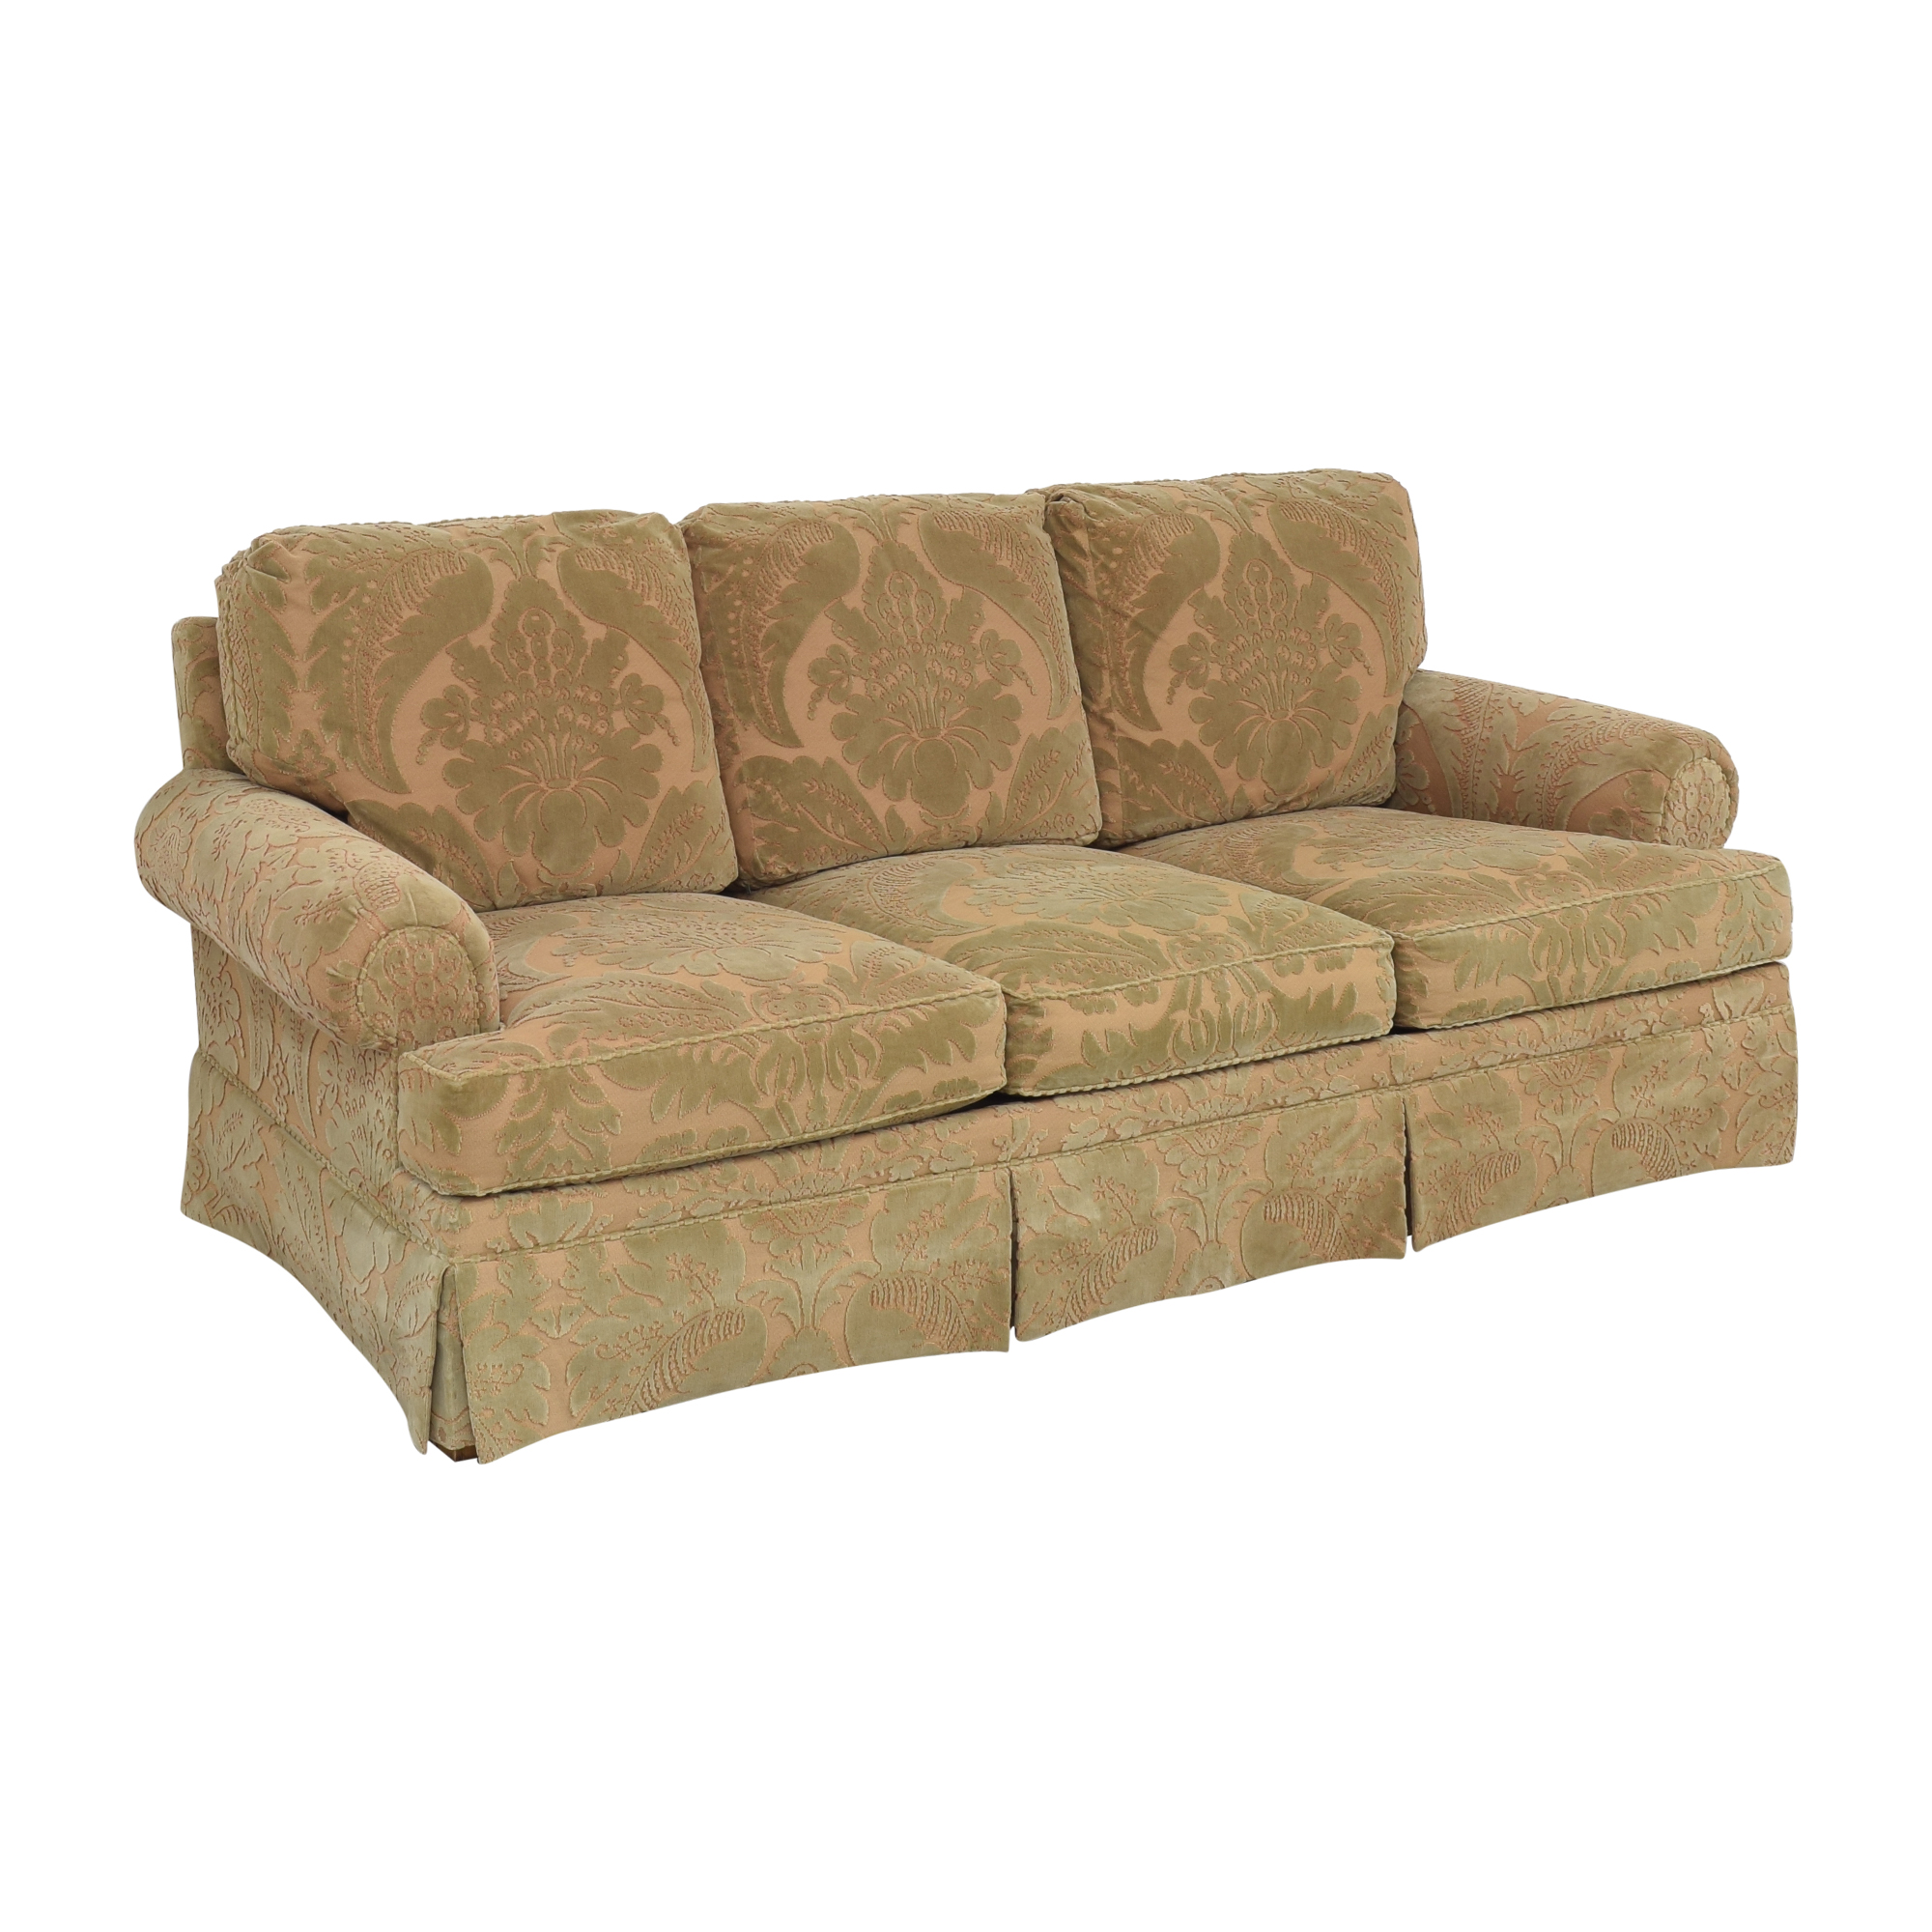 Hickory Chair Hickory Chair Sovereign Collection Devon Sofa nyc